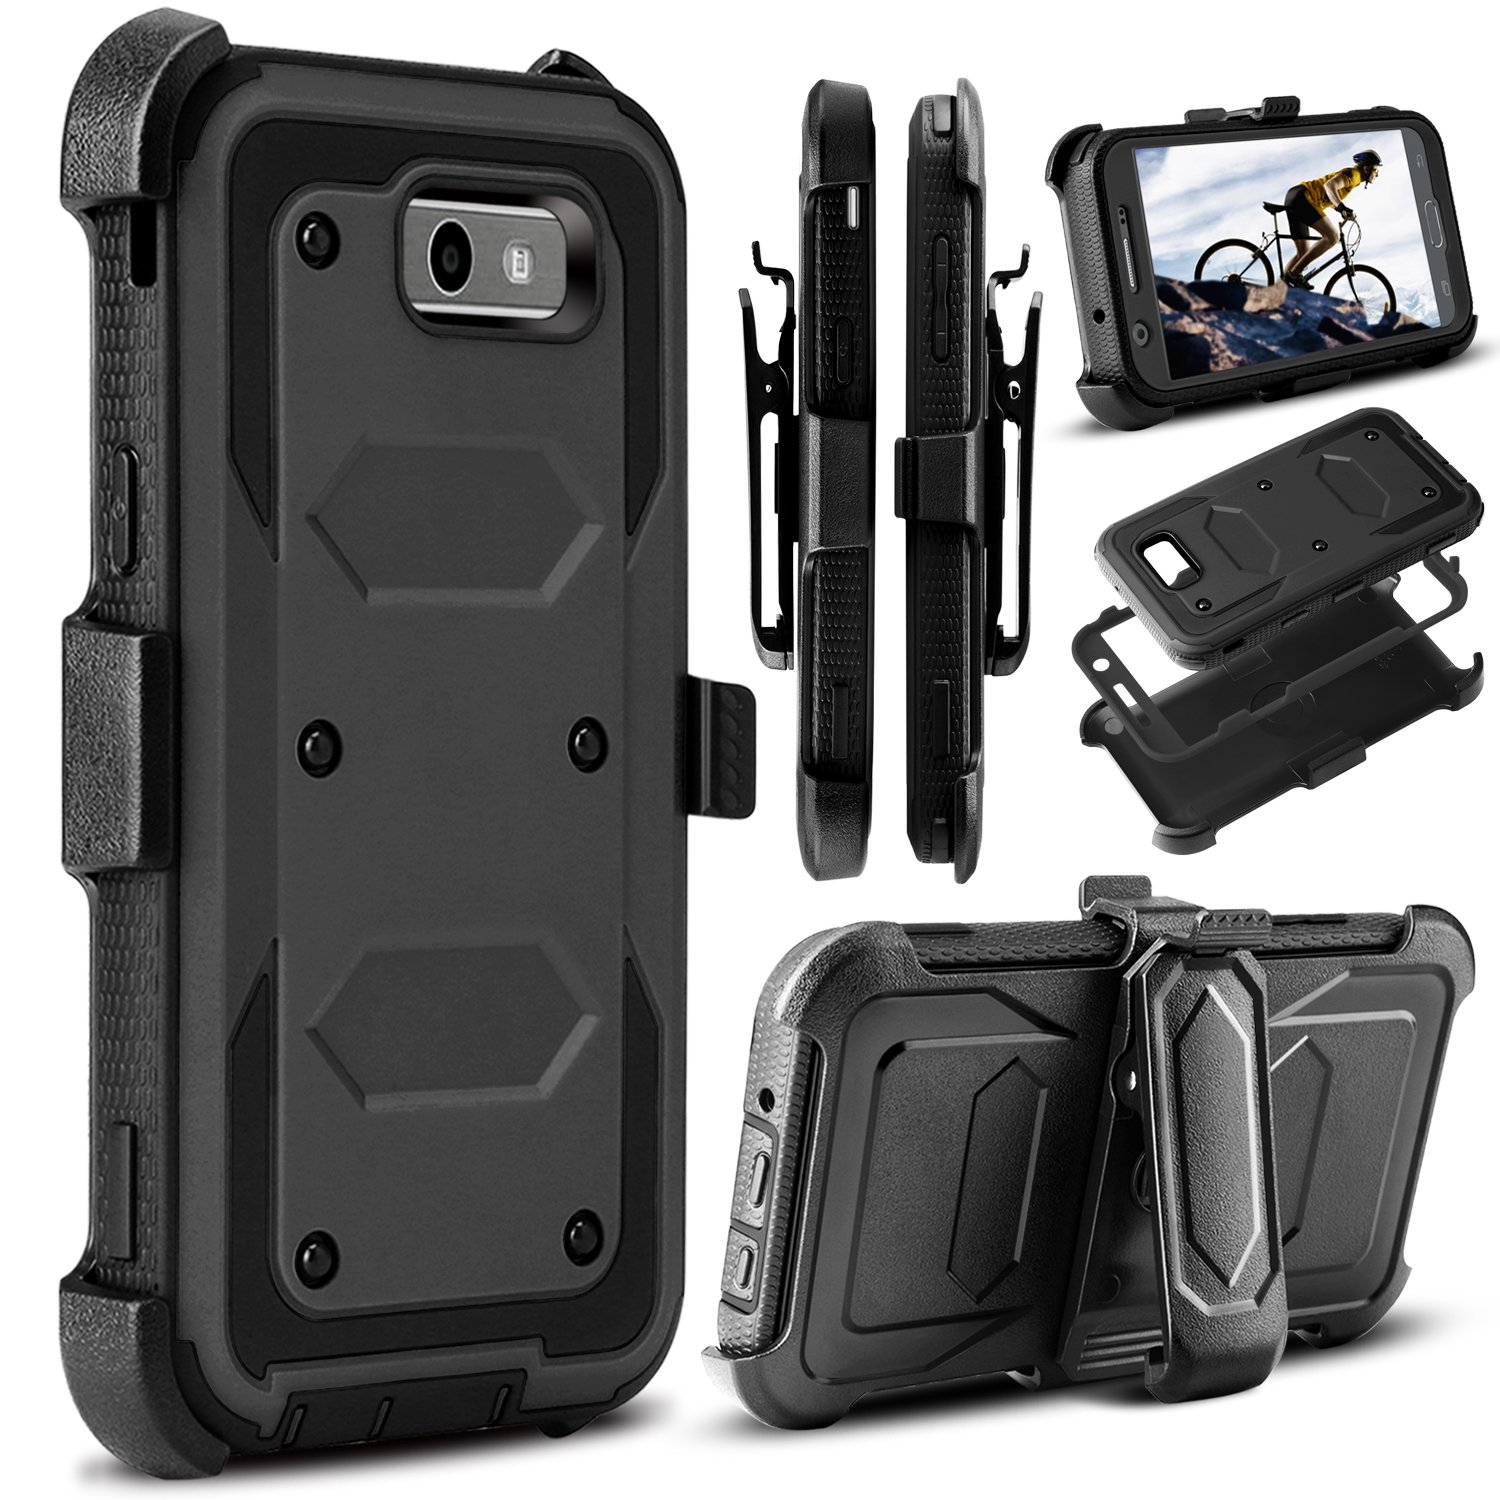 Storm Tank Holster Case Tempered Glass For Samsung Full Color Galaxy J3 Pro Cover Emerge 2017 Amp Prime 2 Venoro Heavy